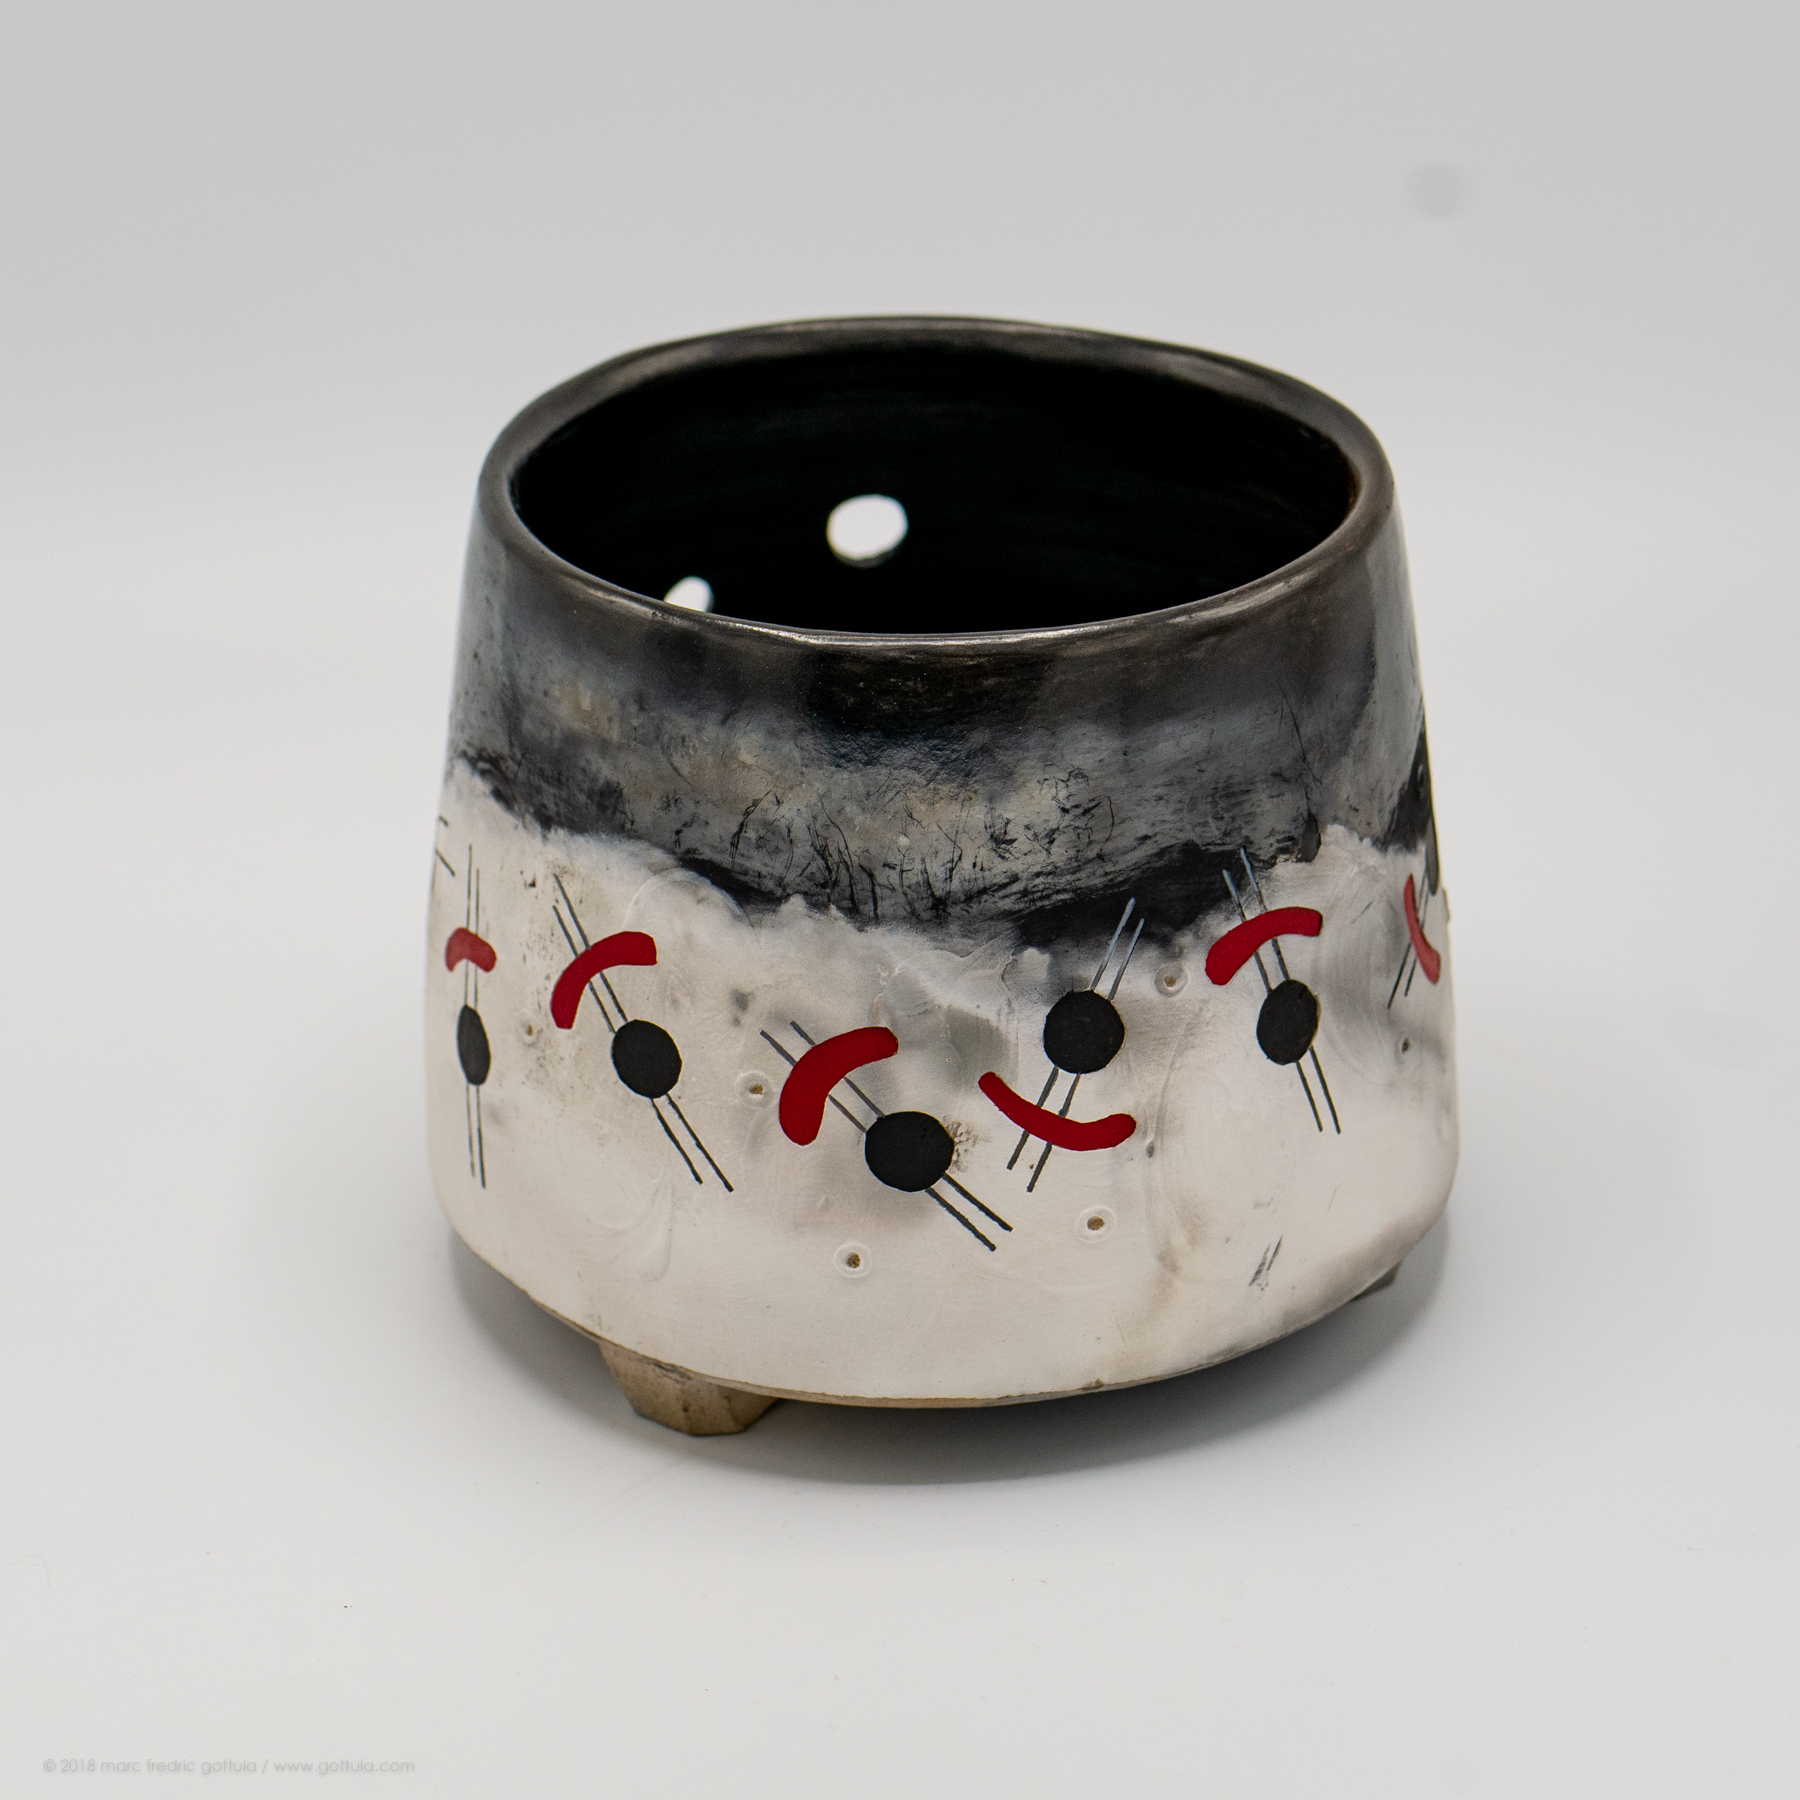 Yarn Bowl - pit fired / stoneware and porcelain